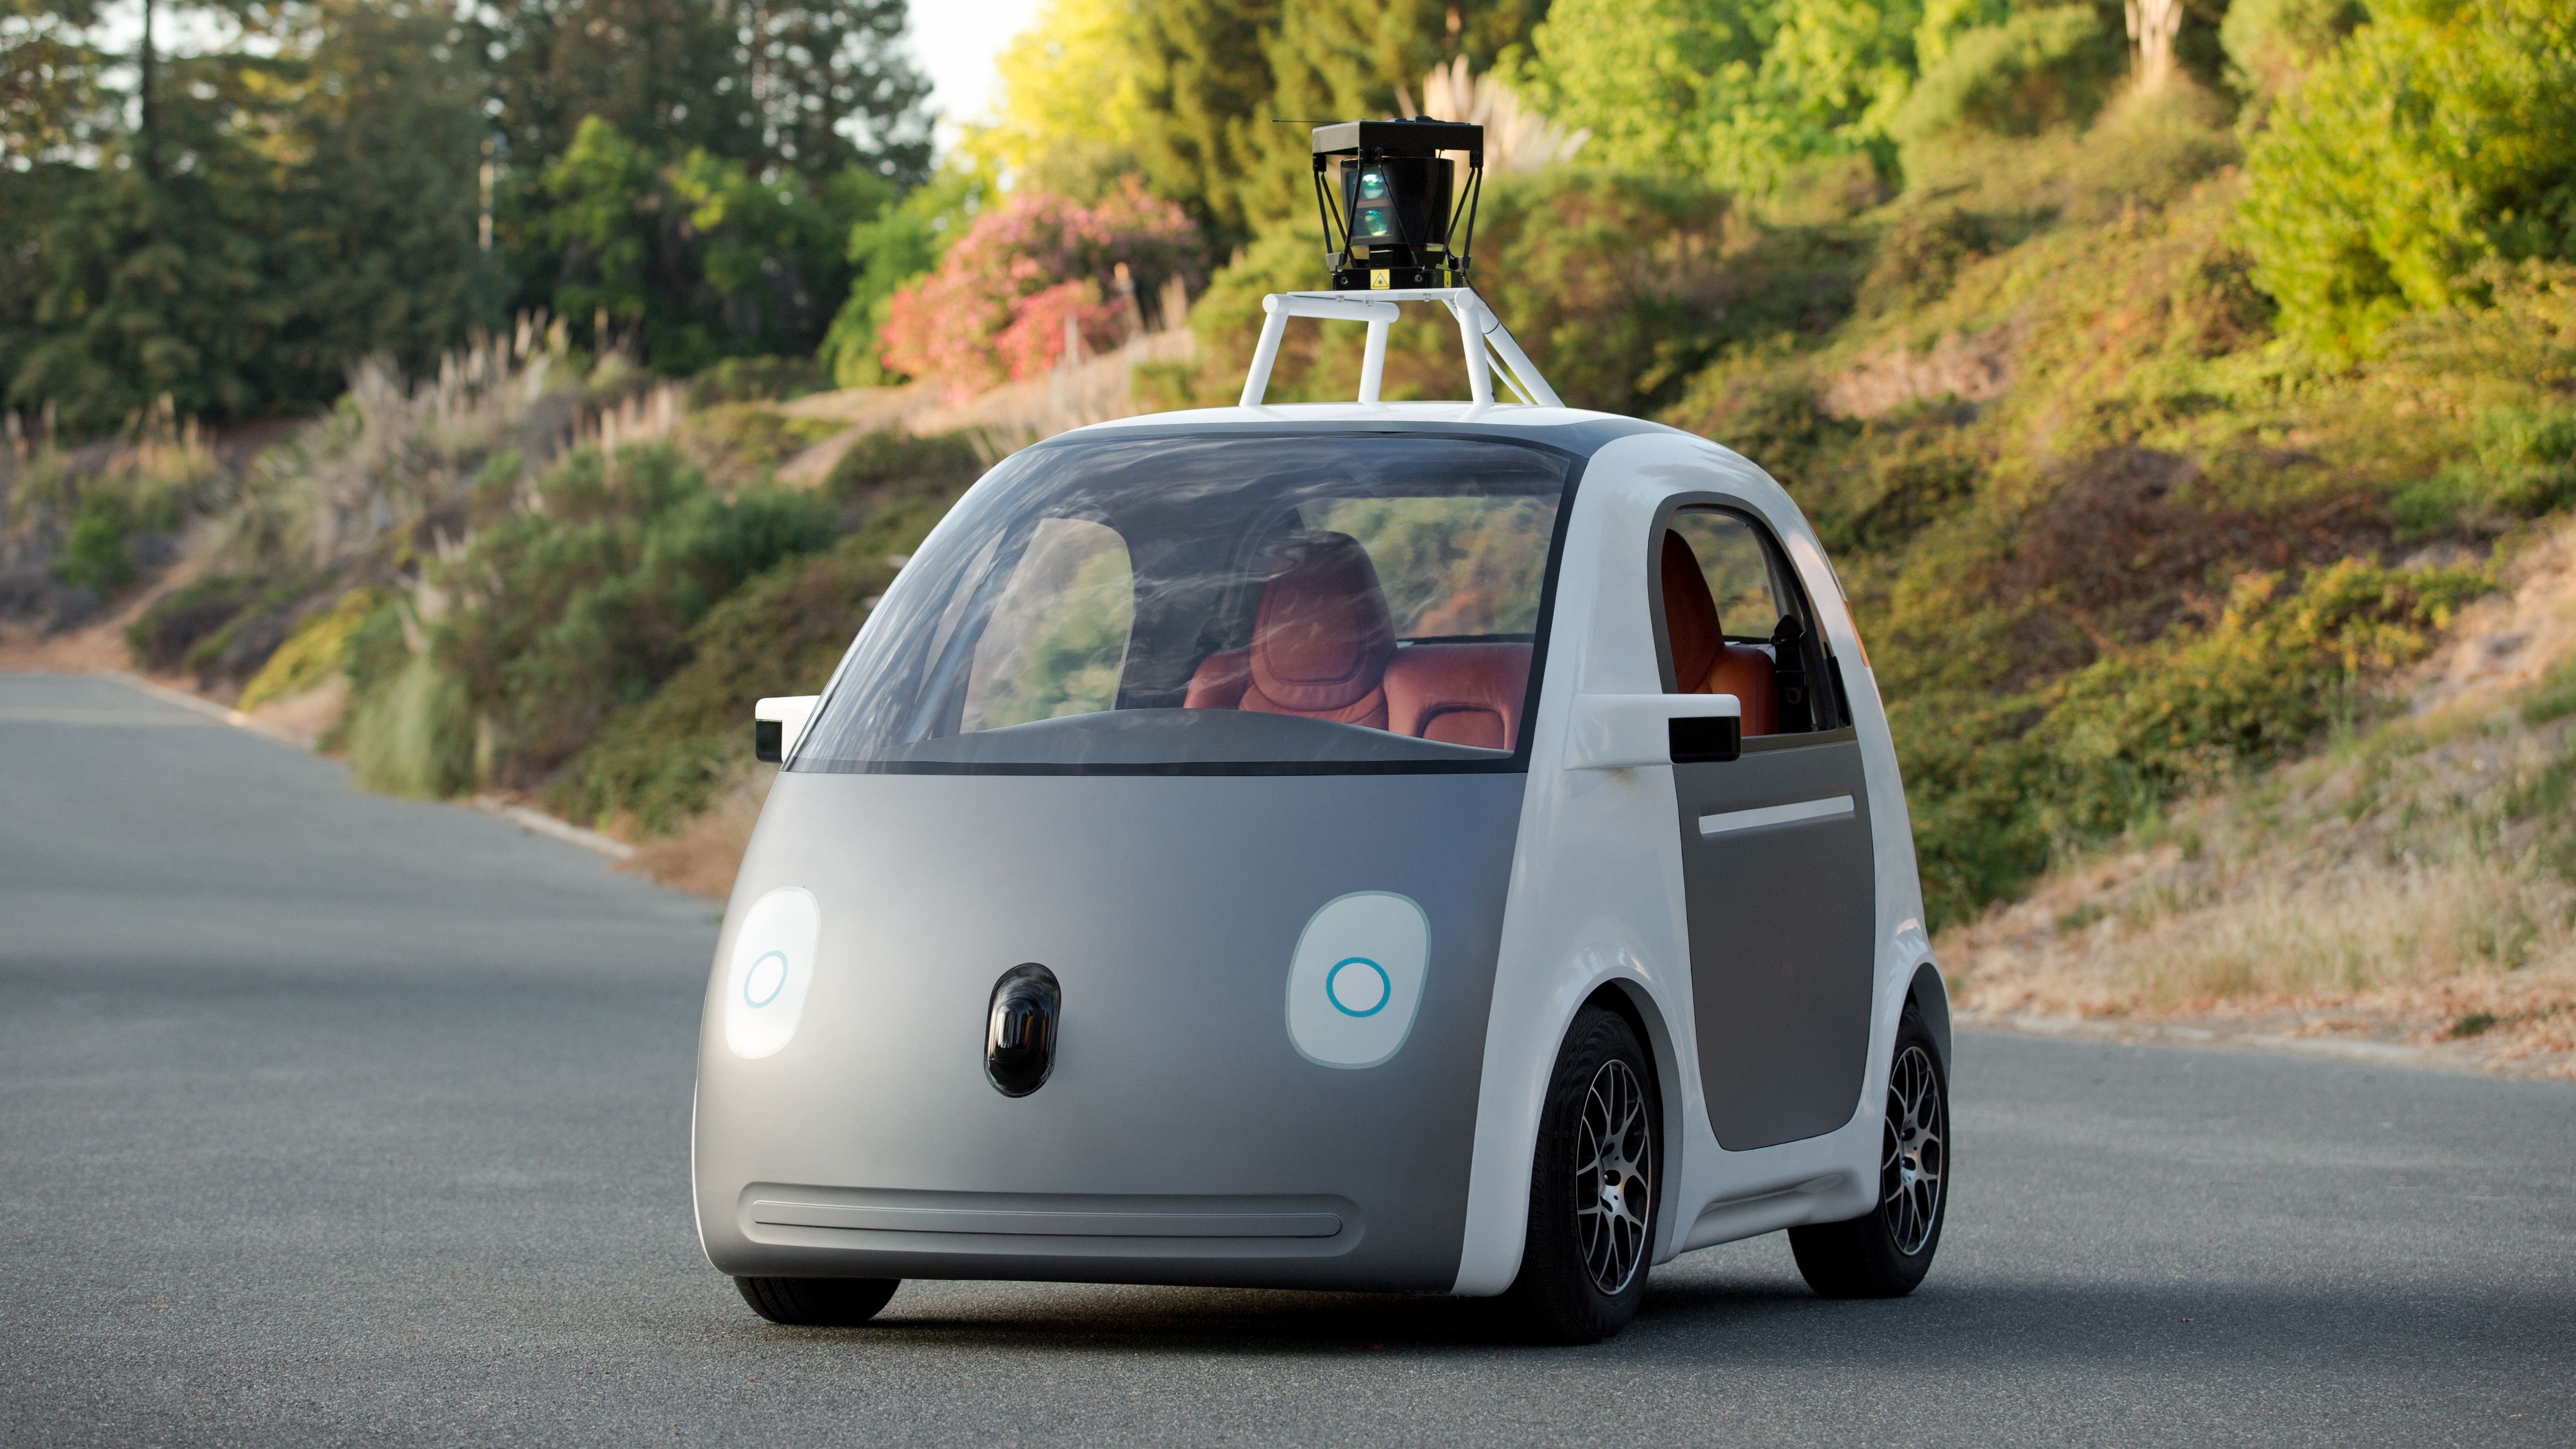 Google Latest News on Put Ads Every Where and Car with No Steering Wheel